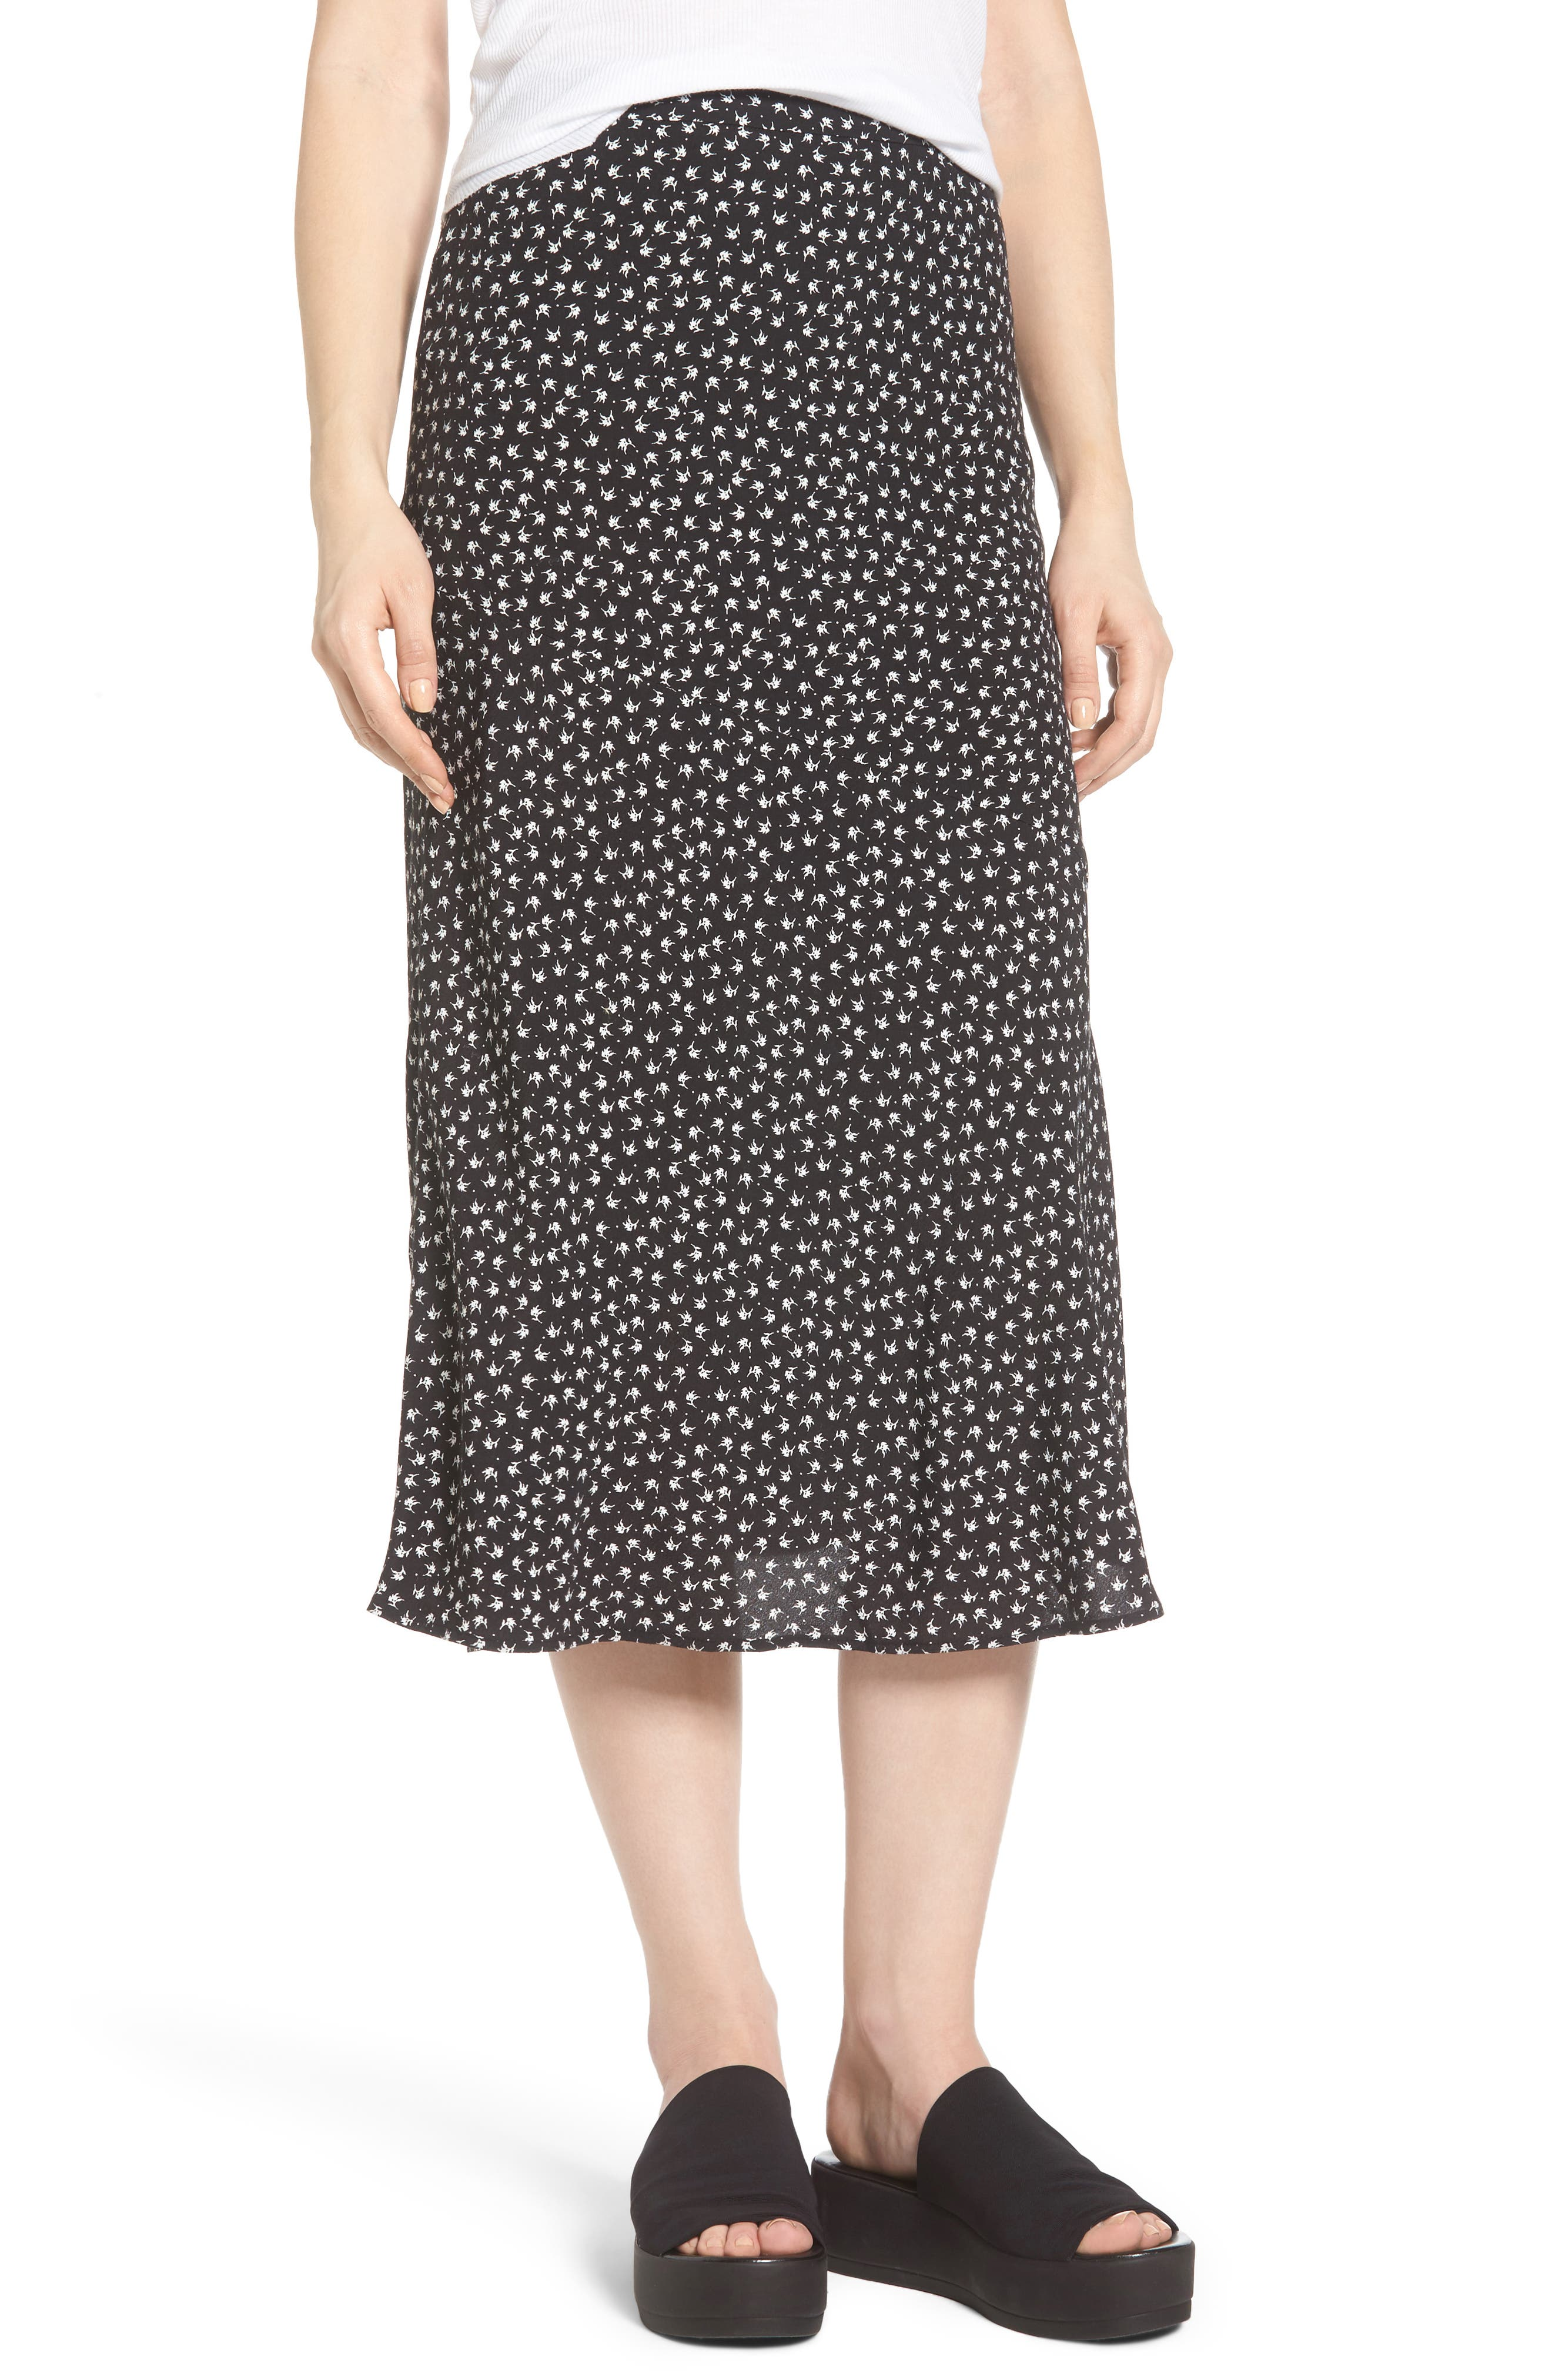 Print Bias Cut Skirt,                             Main thumbnail 1, color,                             Black Tsd Stem